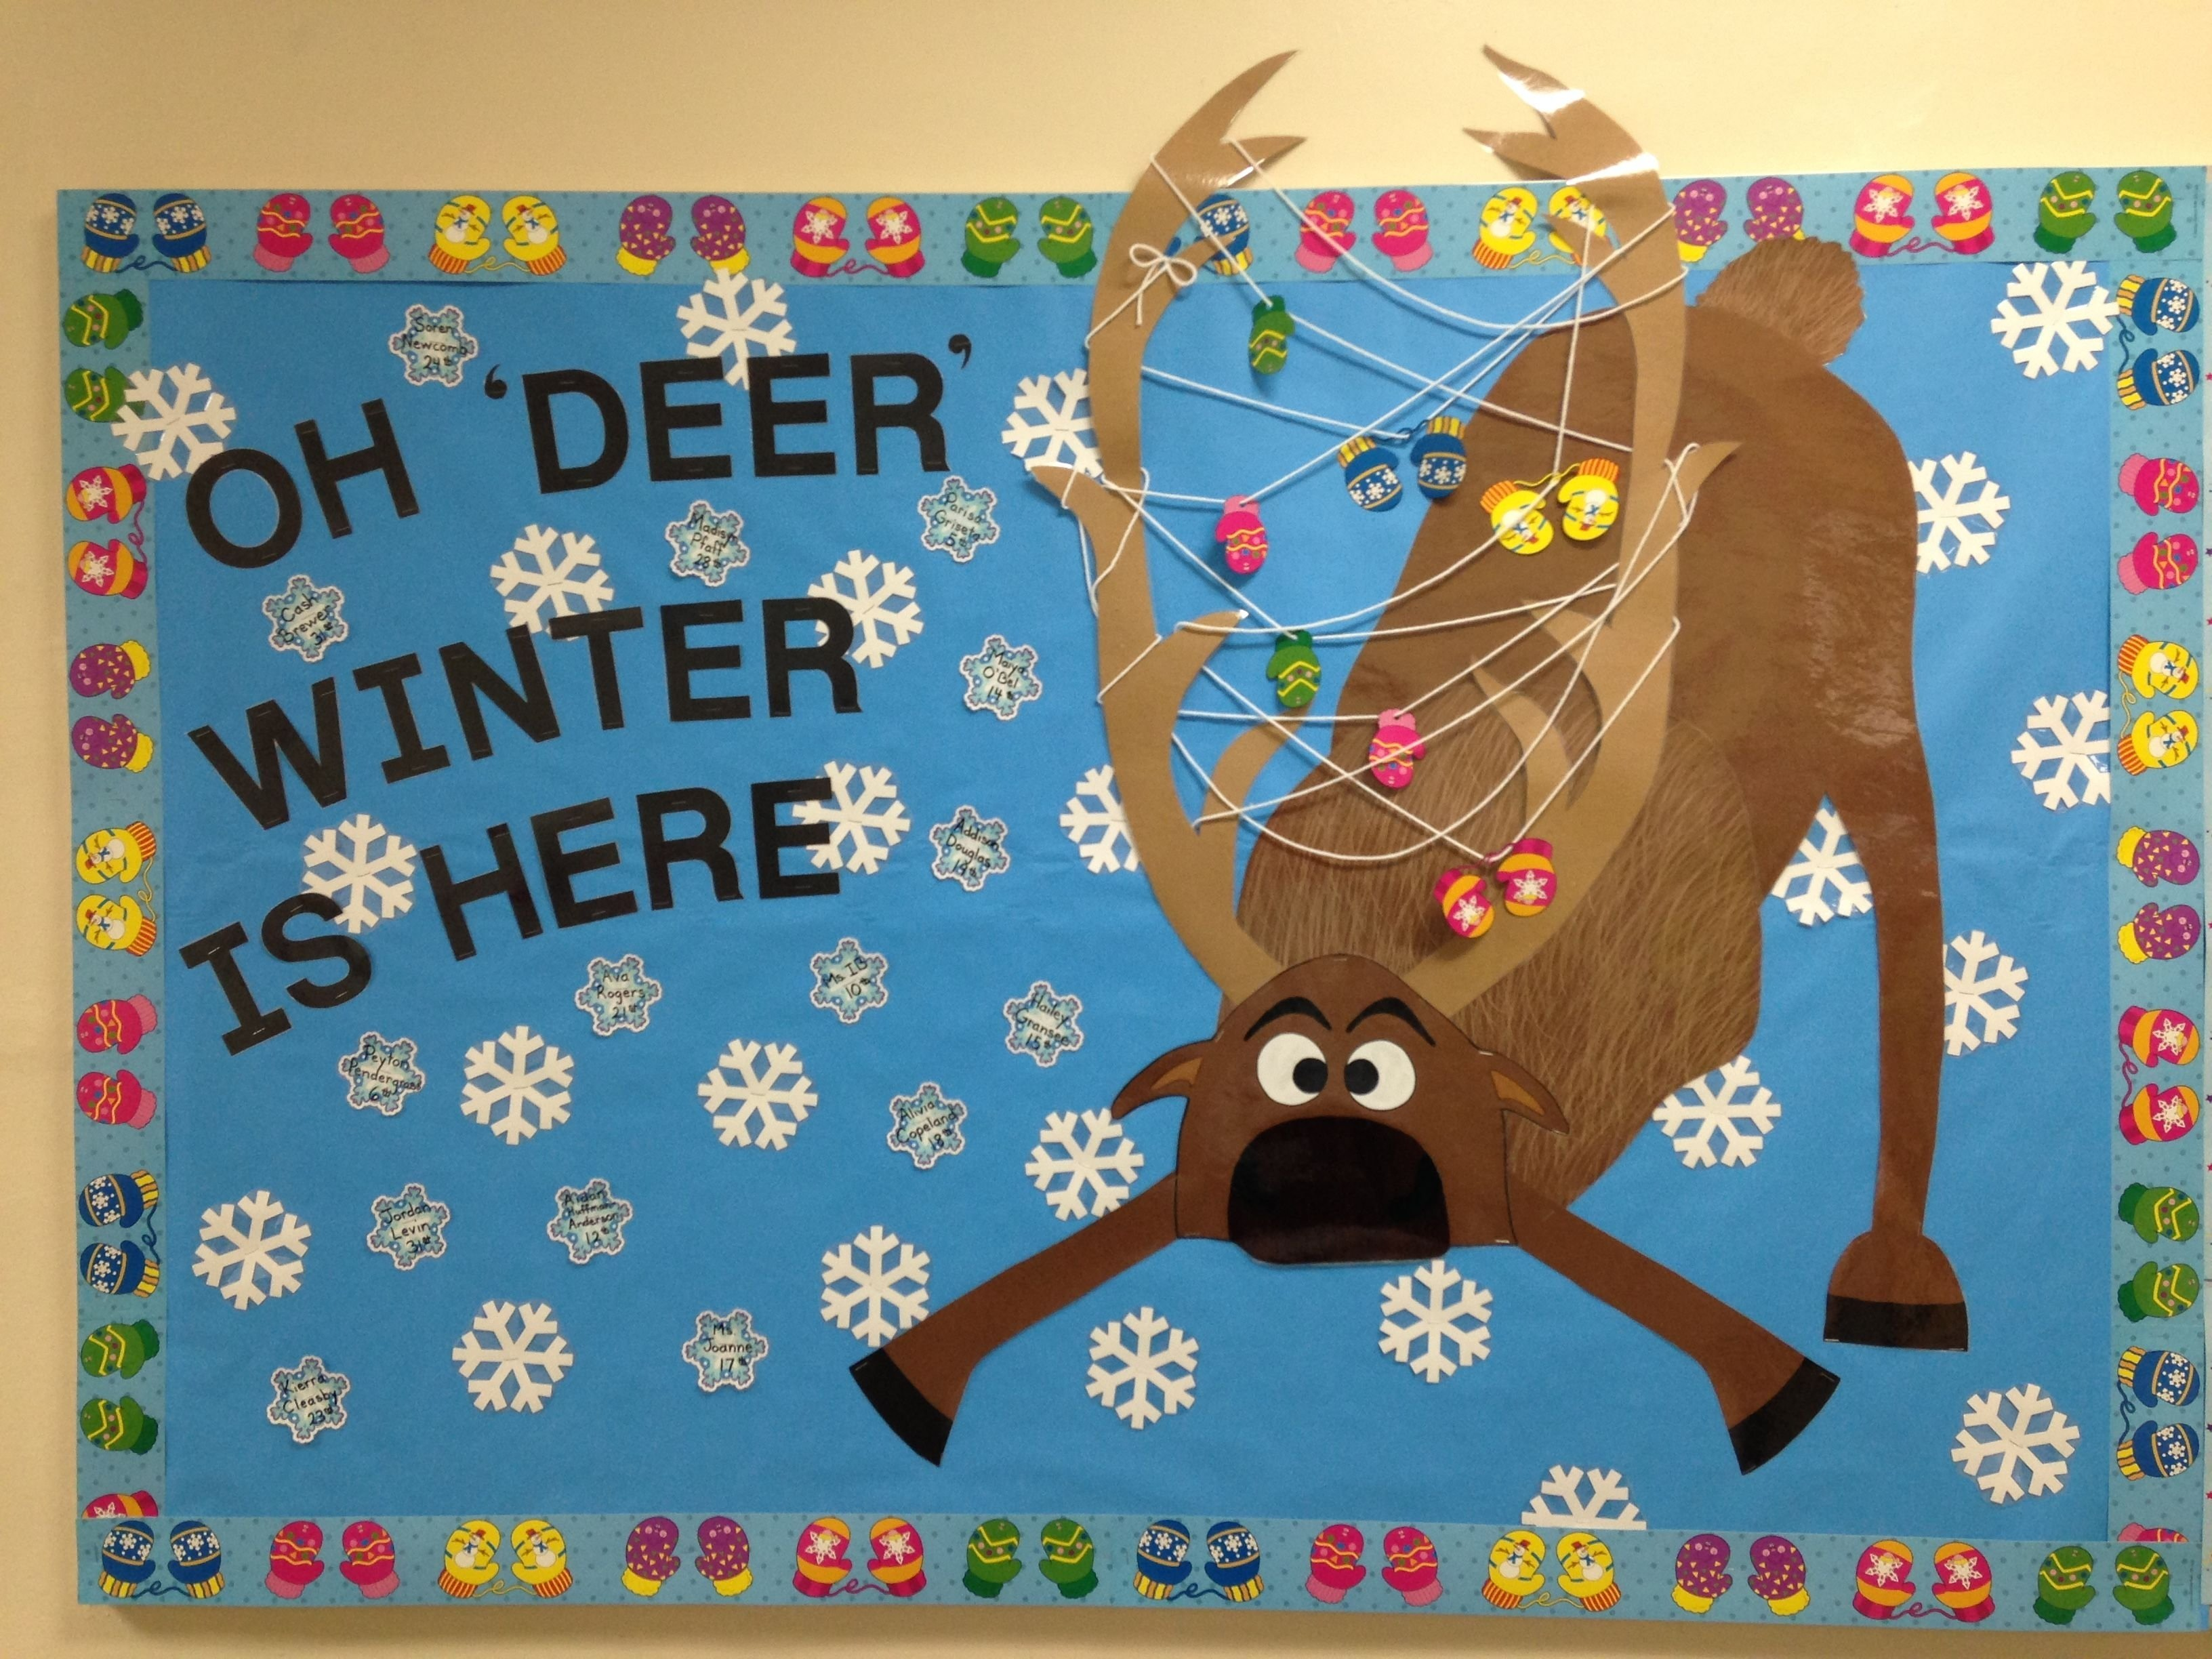 10 Stylish January Bulletin Board Ideas For Teachers december winter bulletin board oh deer winter is here frozens 1 2021